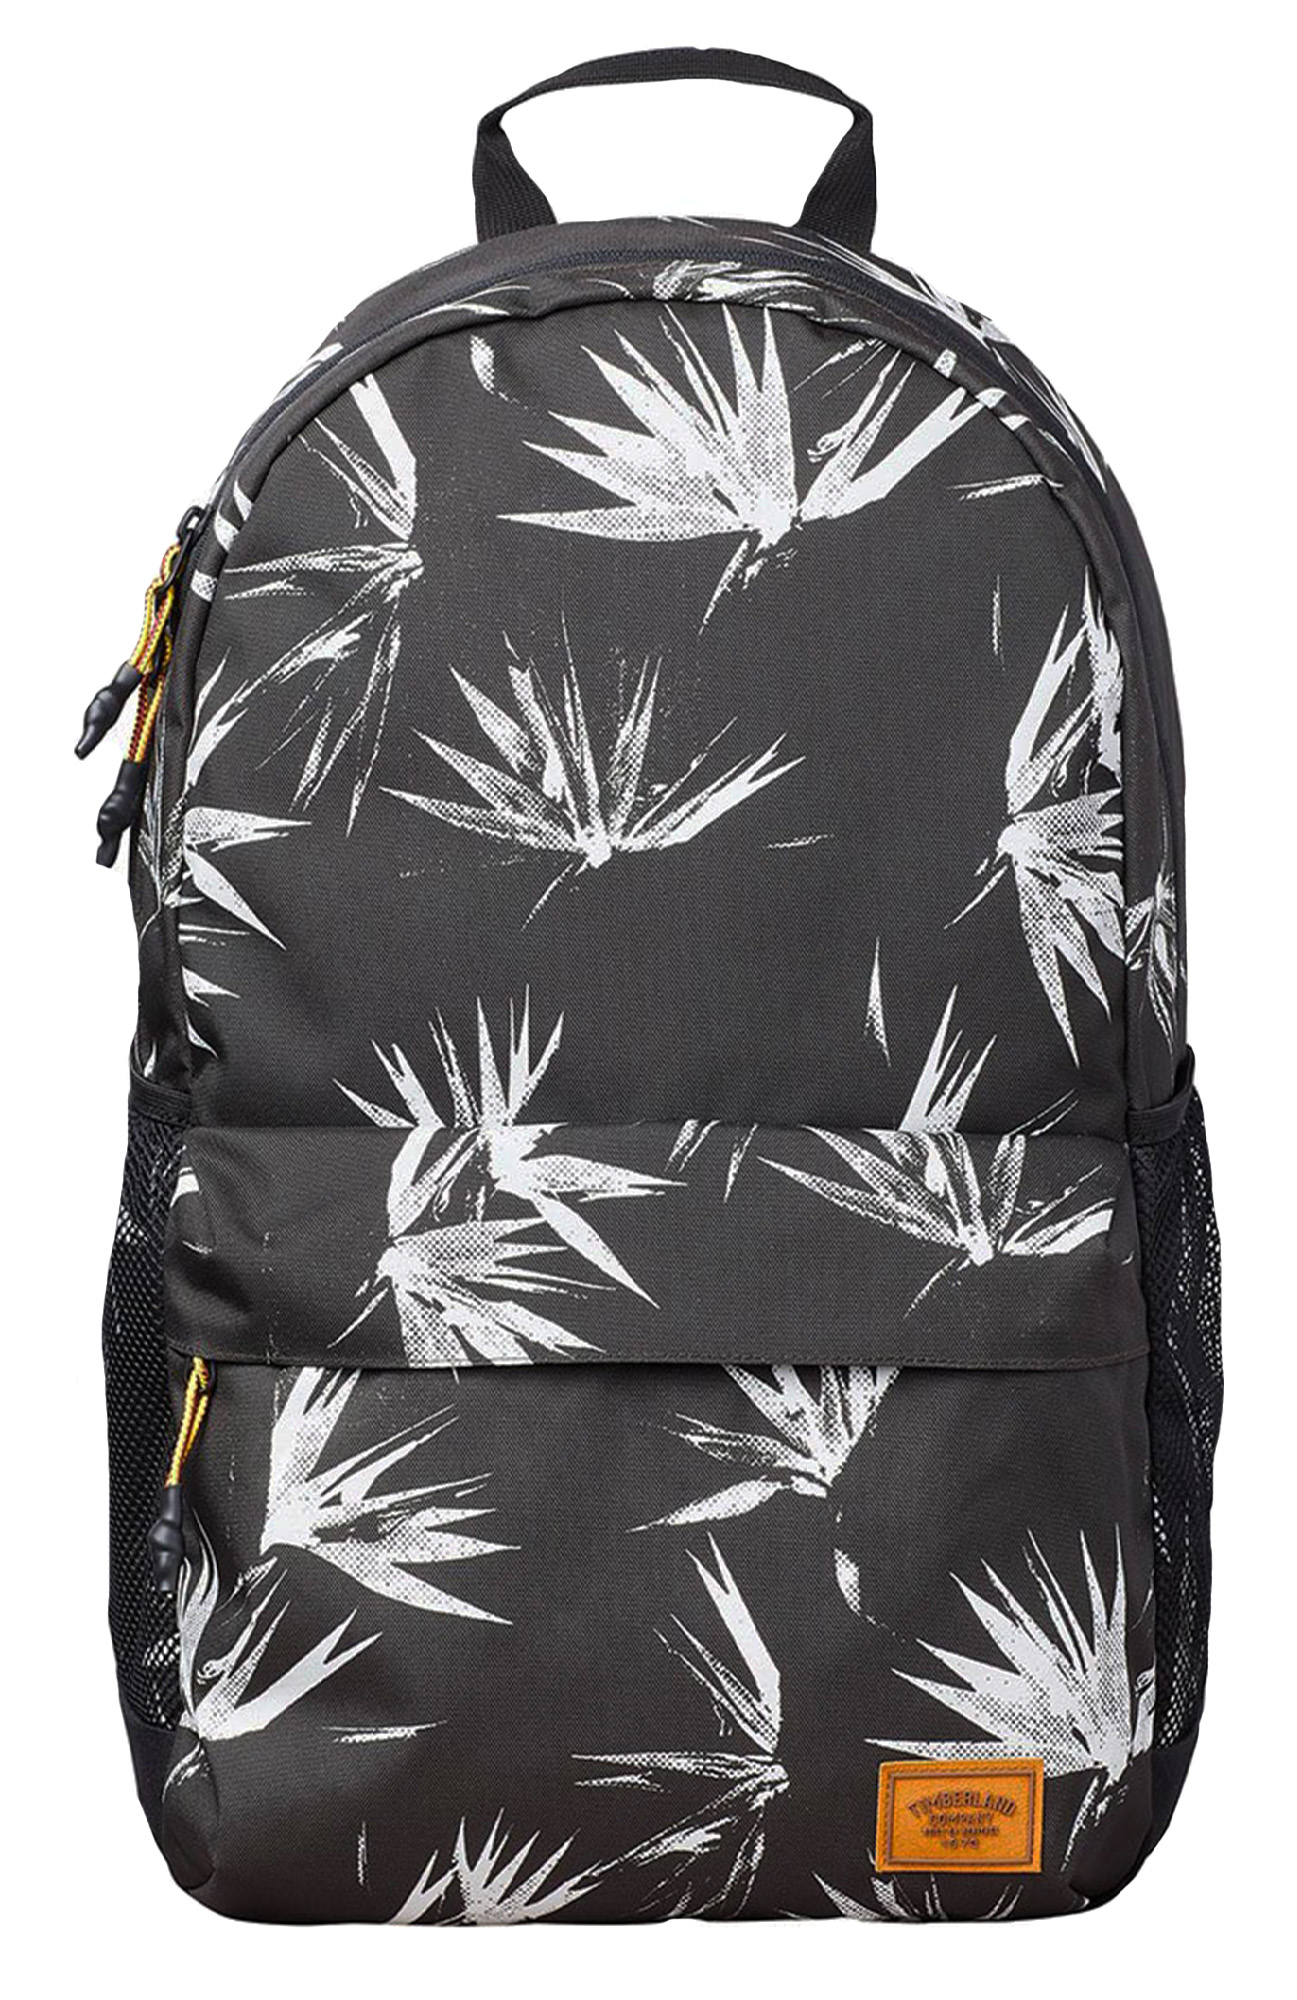 3357a377dcd Timberland Rucksack Black Print Backpack School Casual Work Bag ...